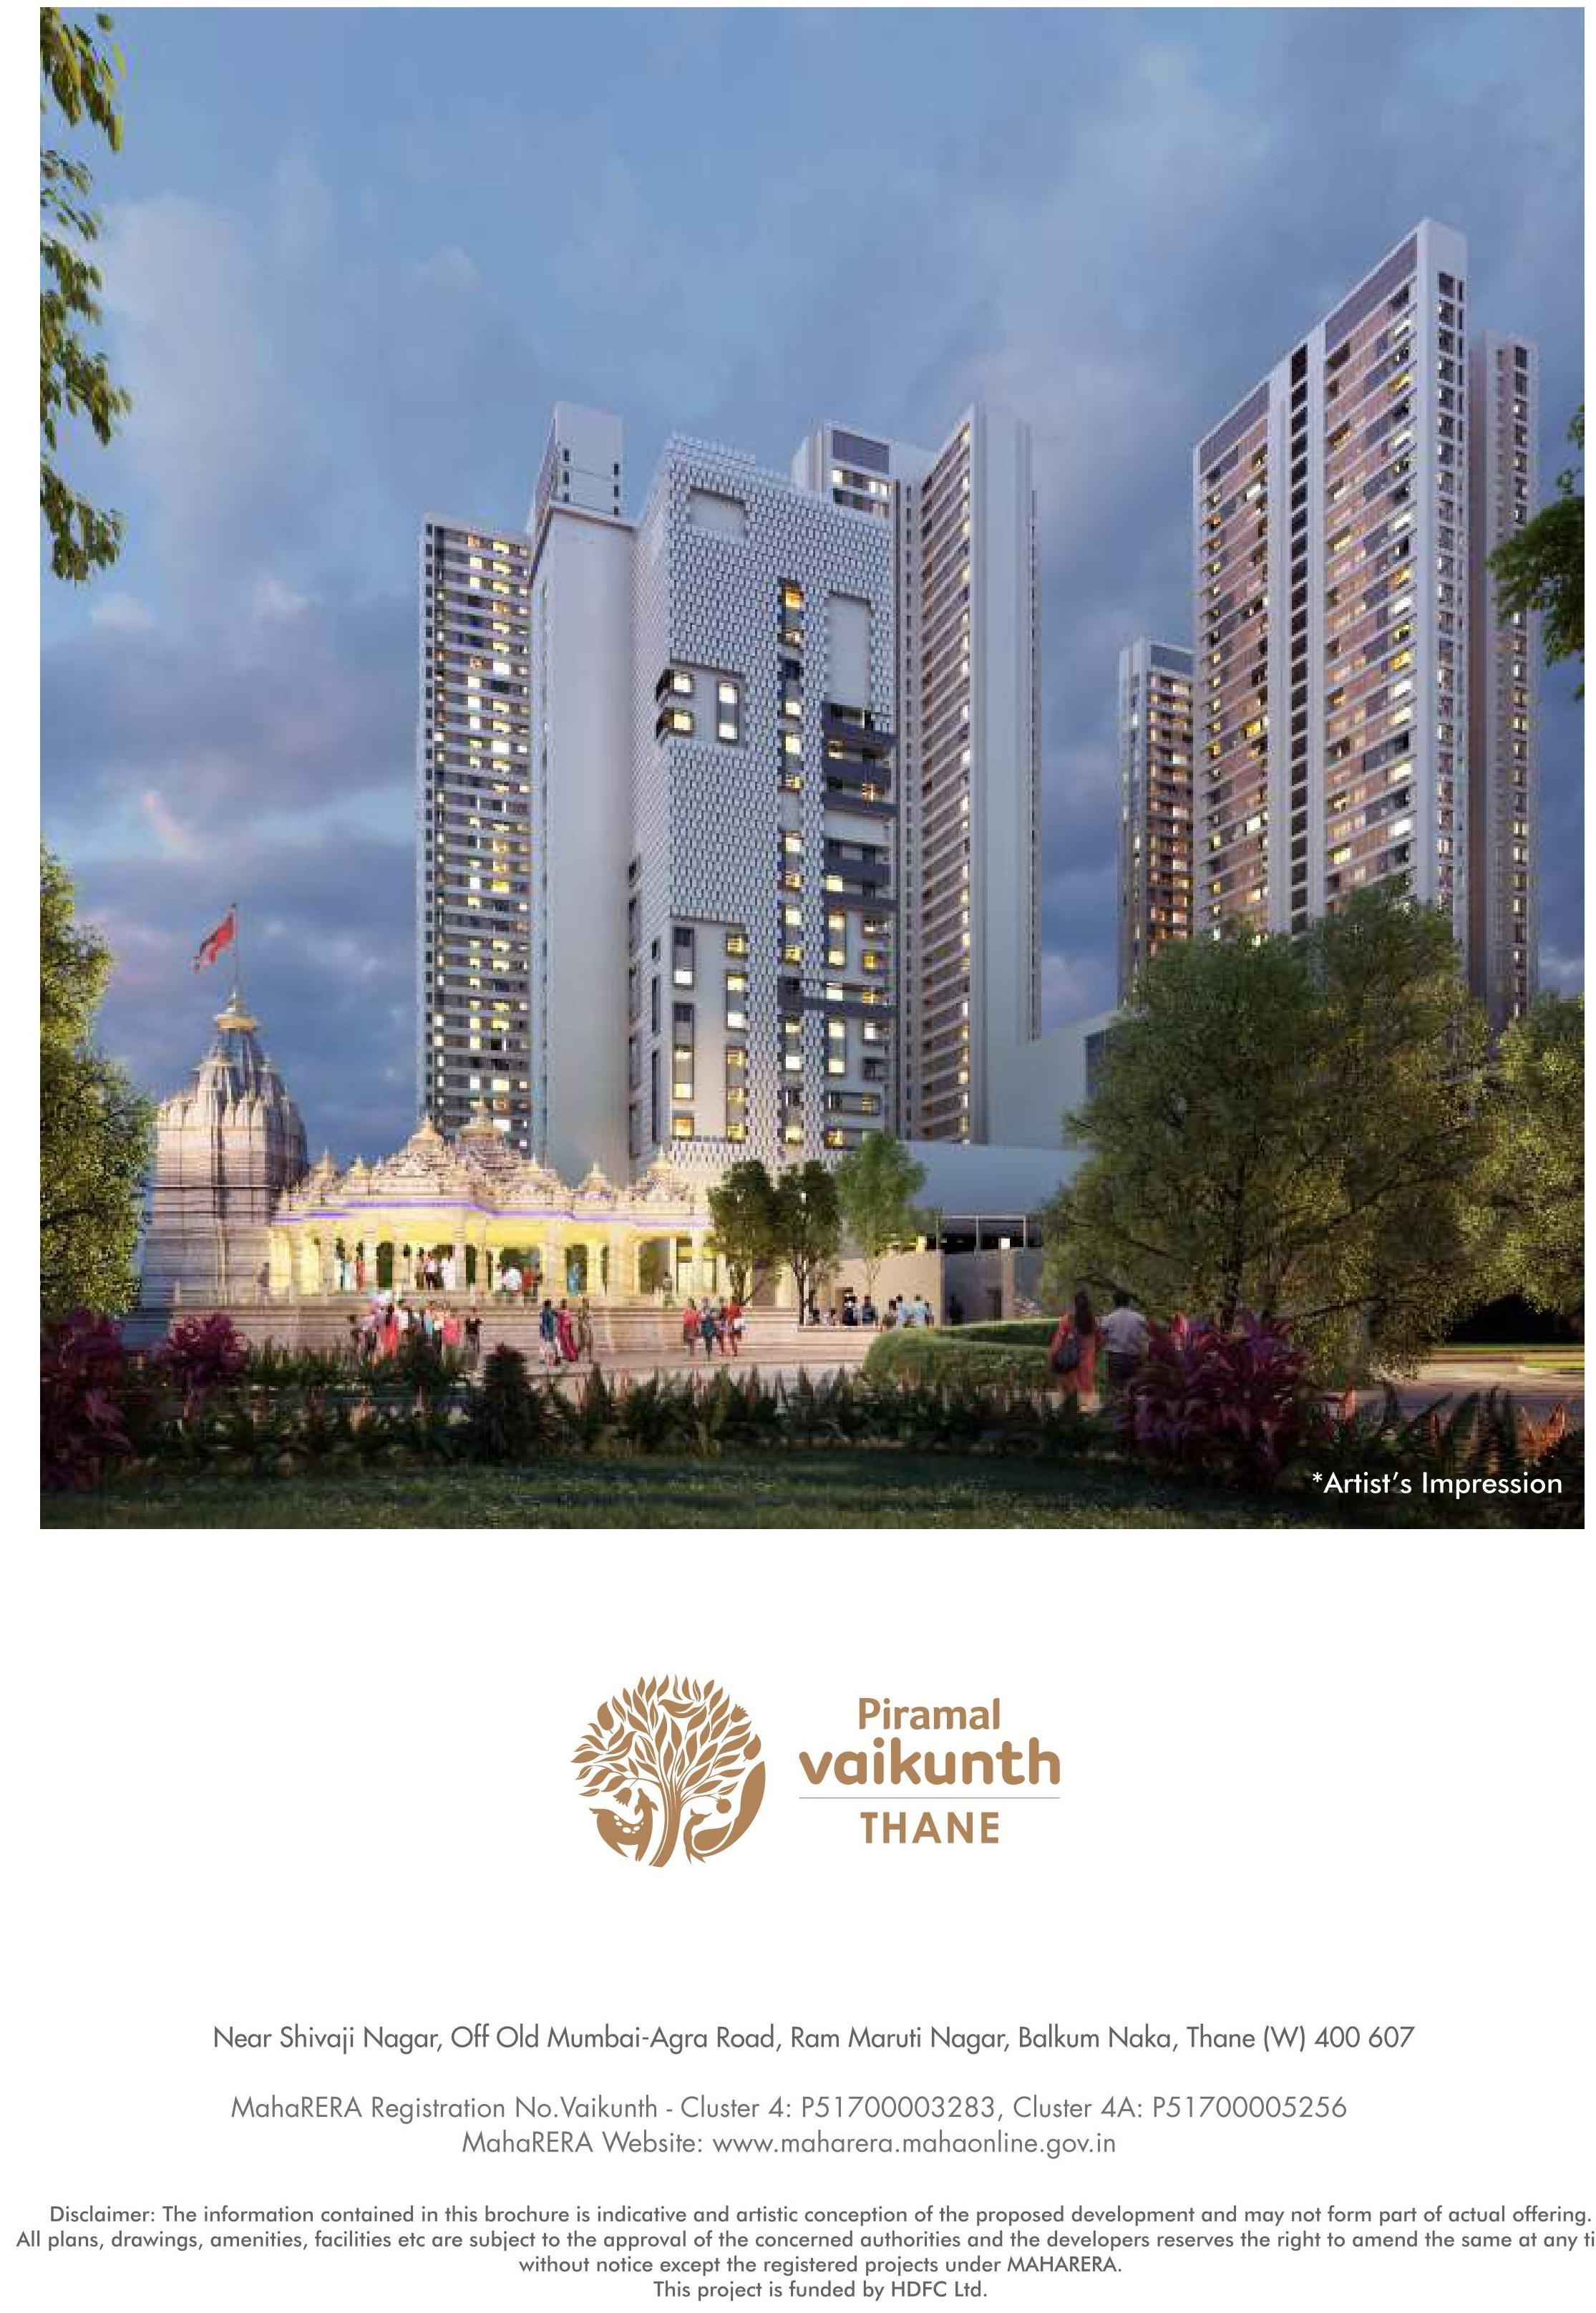 Piramal Vaikunth 2 BHK Cluster 4 4A just Rs 0 83 Cr onwards in Mumbai